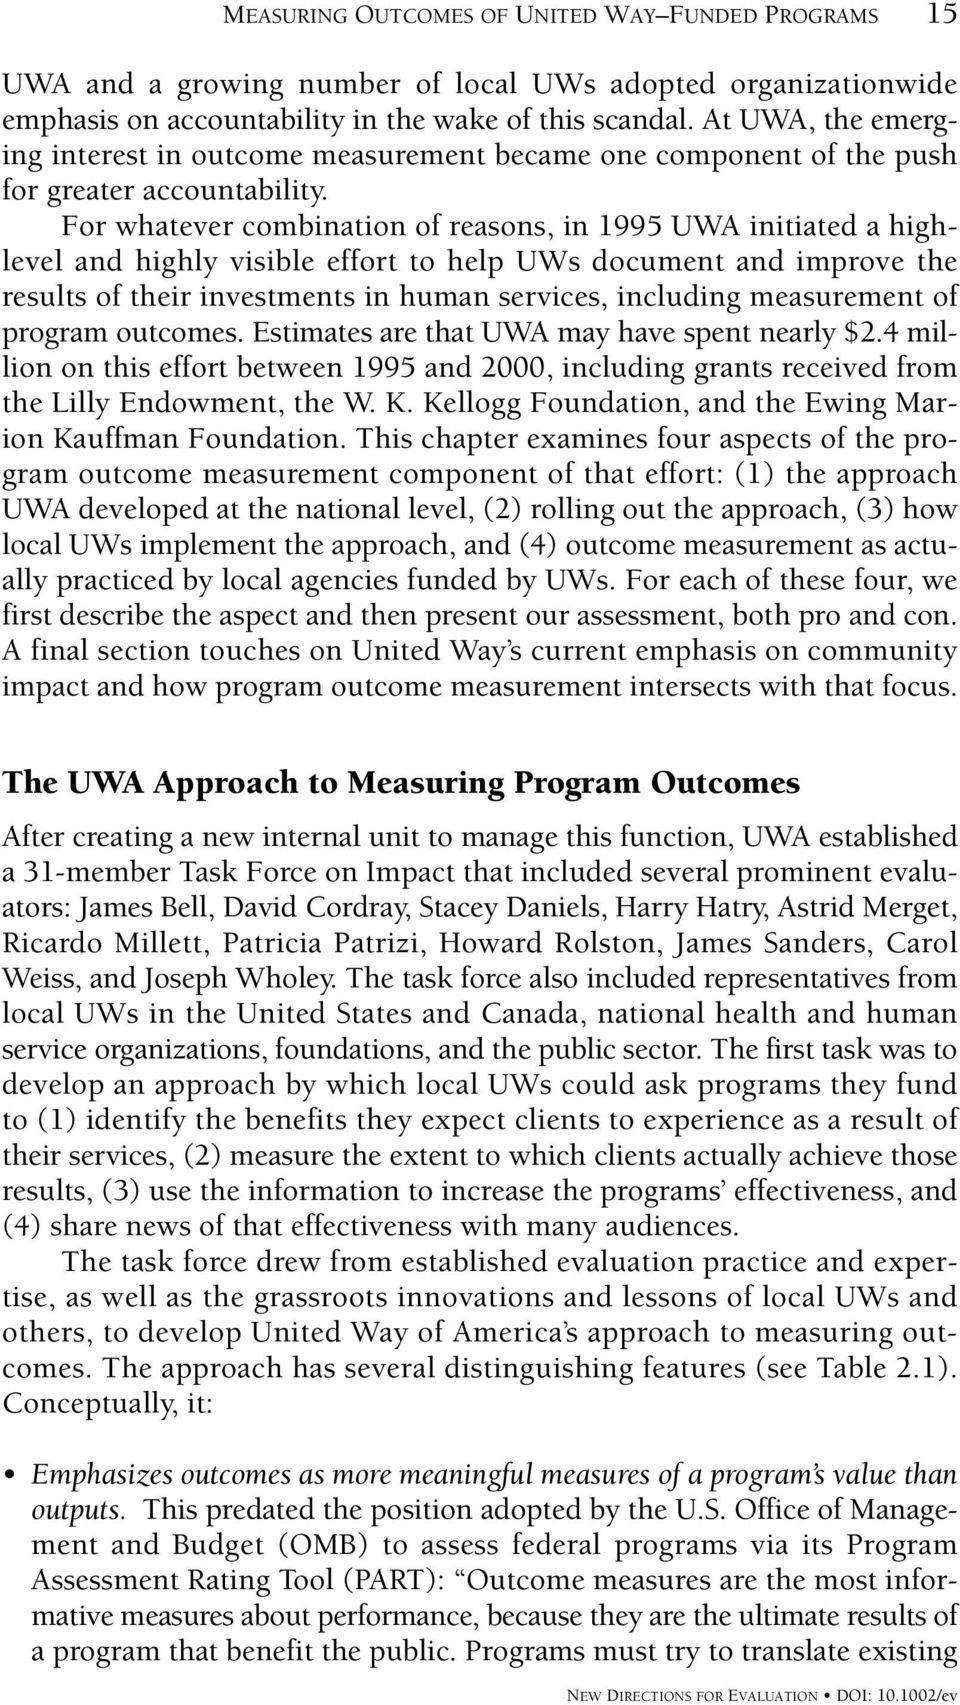 For whatever combination of reasons, in 1995 UWA initiated a highlevel and highly visible effort to help UWs document and improve the results of their investments in human services, including